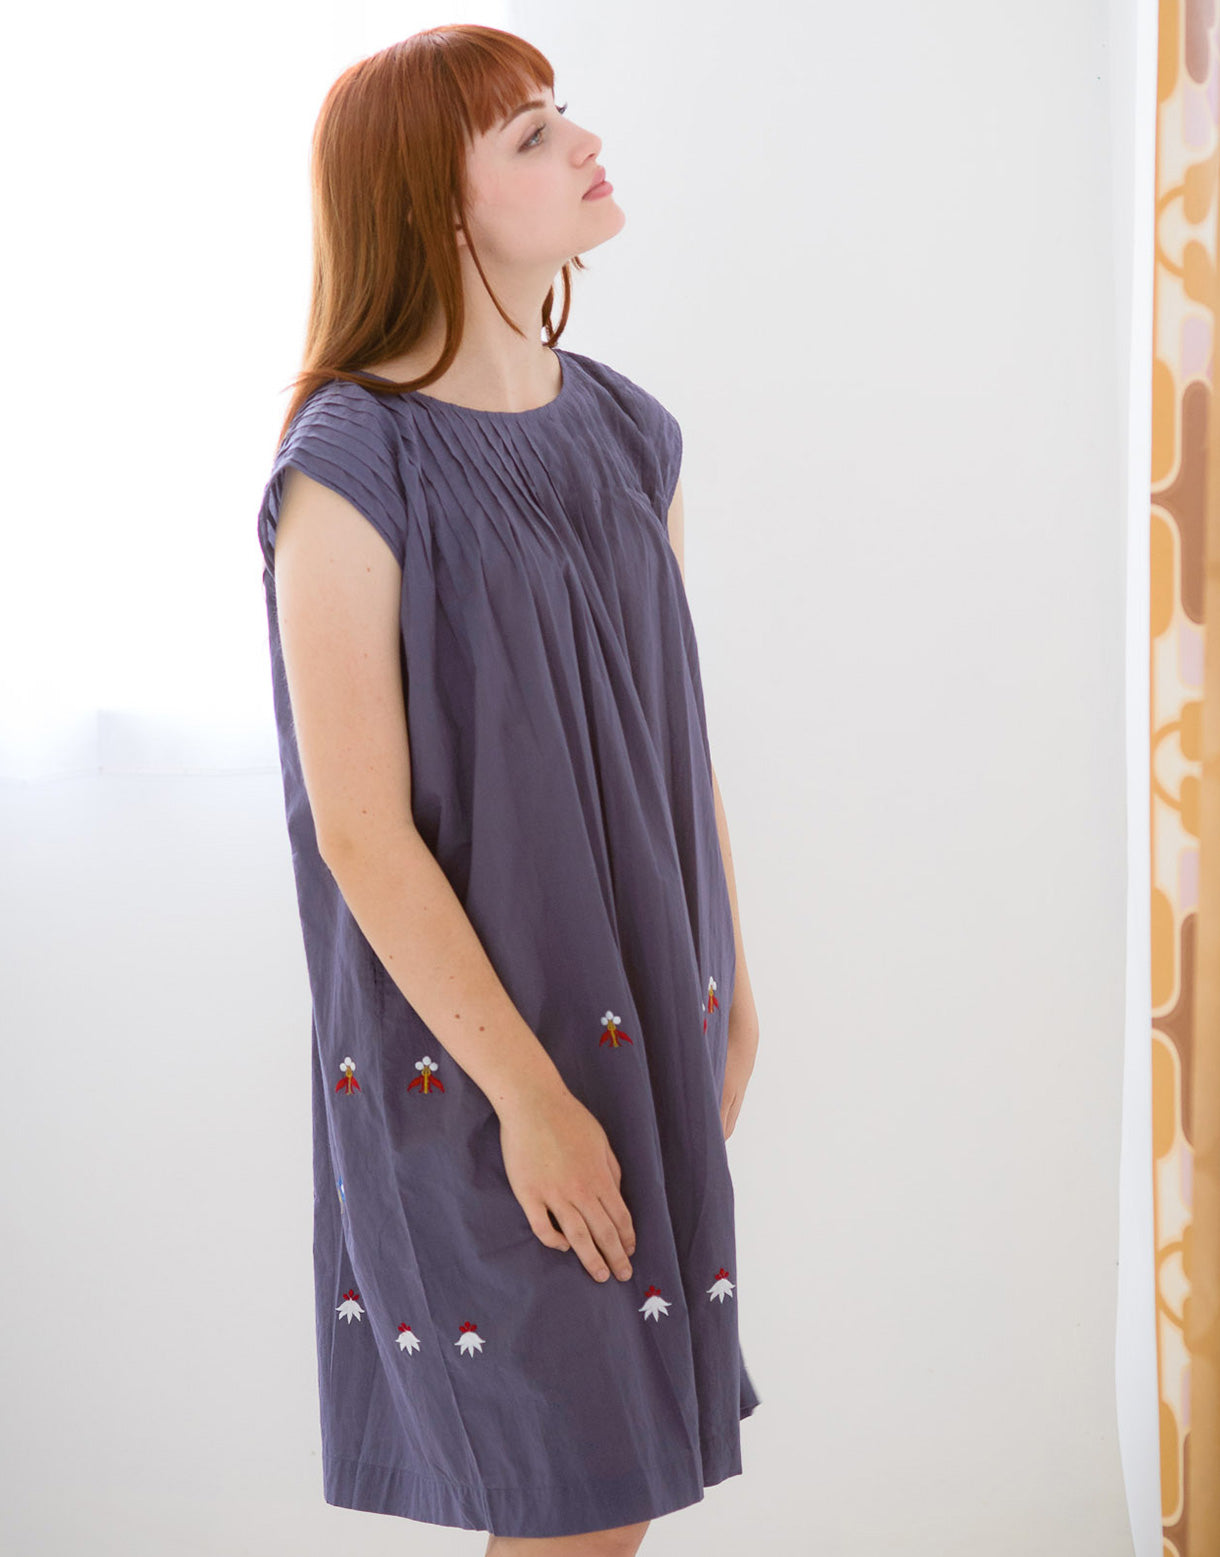 Marley Dress in Dusk *organic cotton